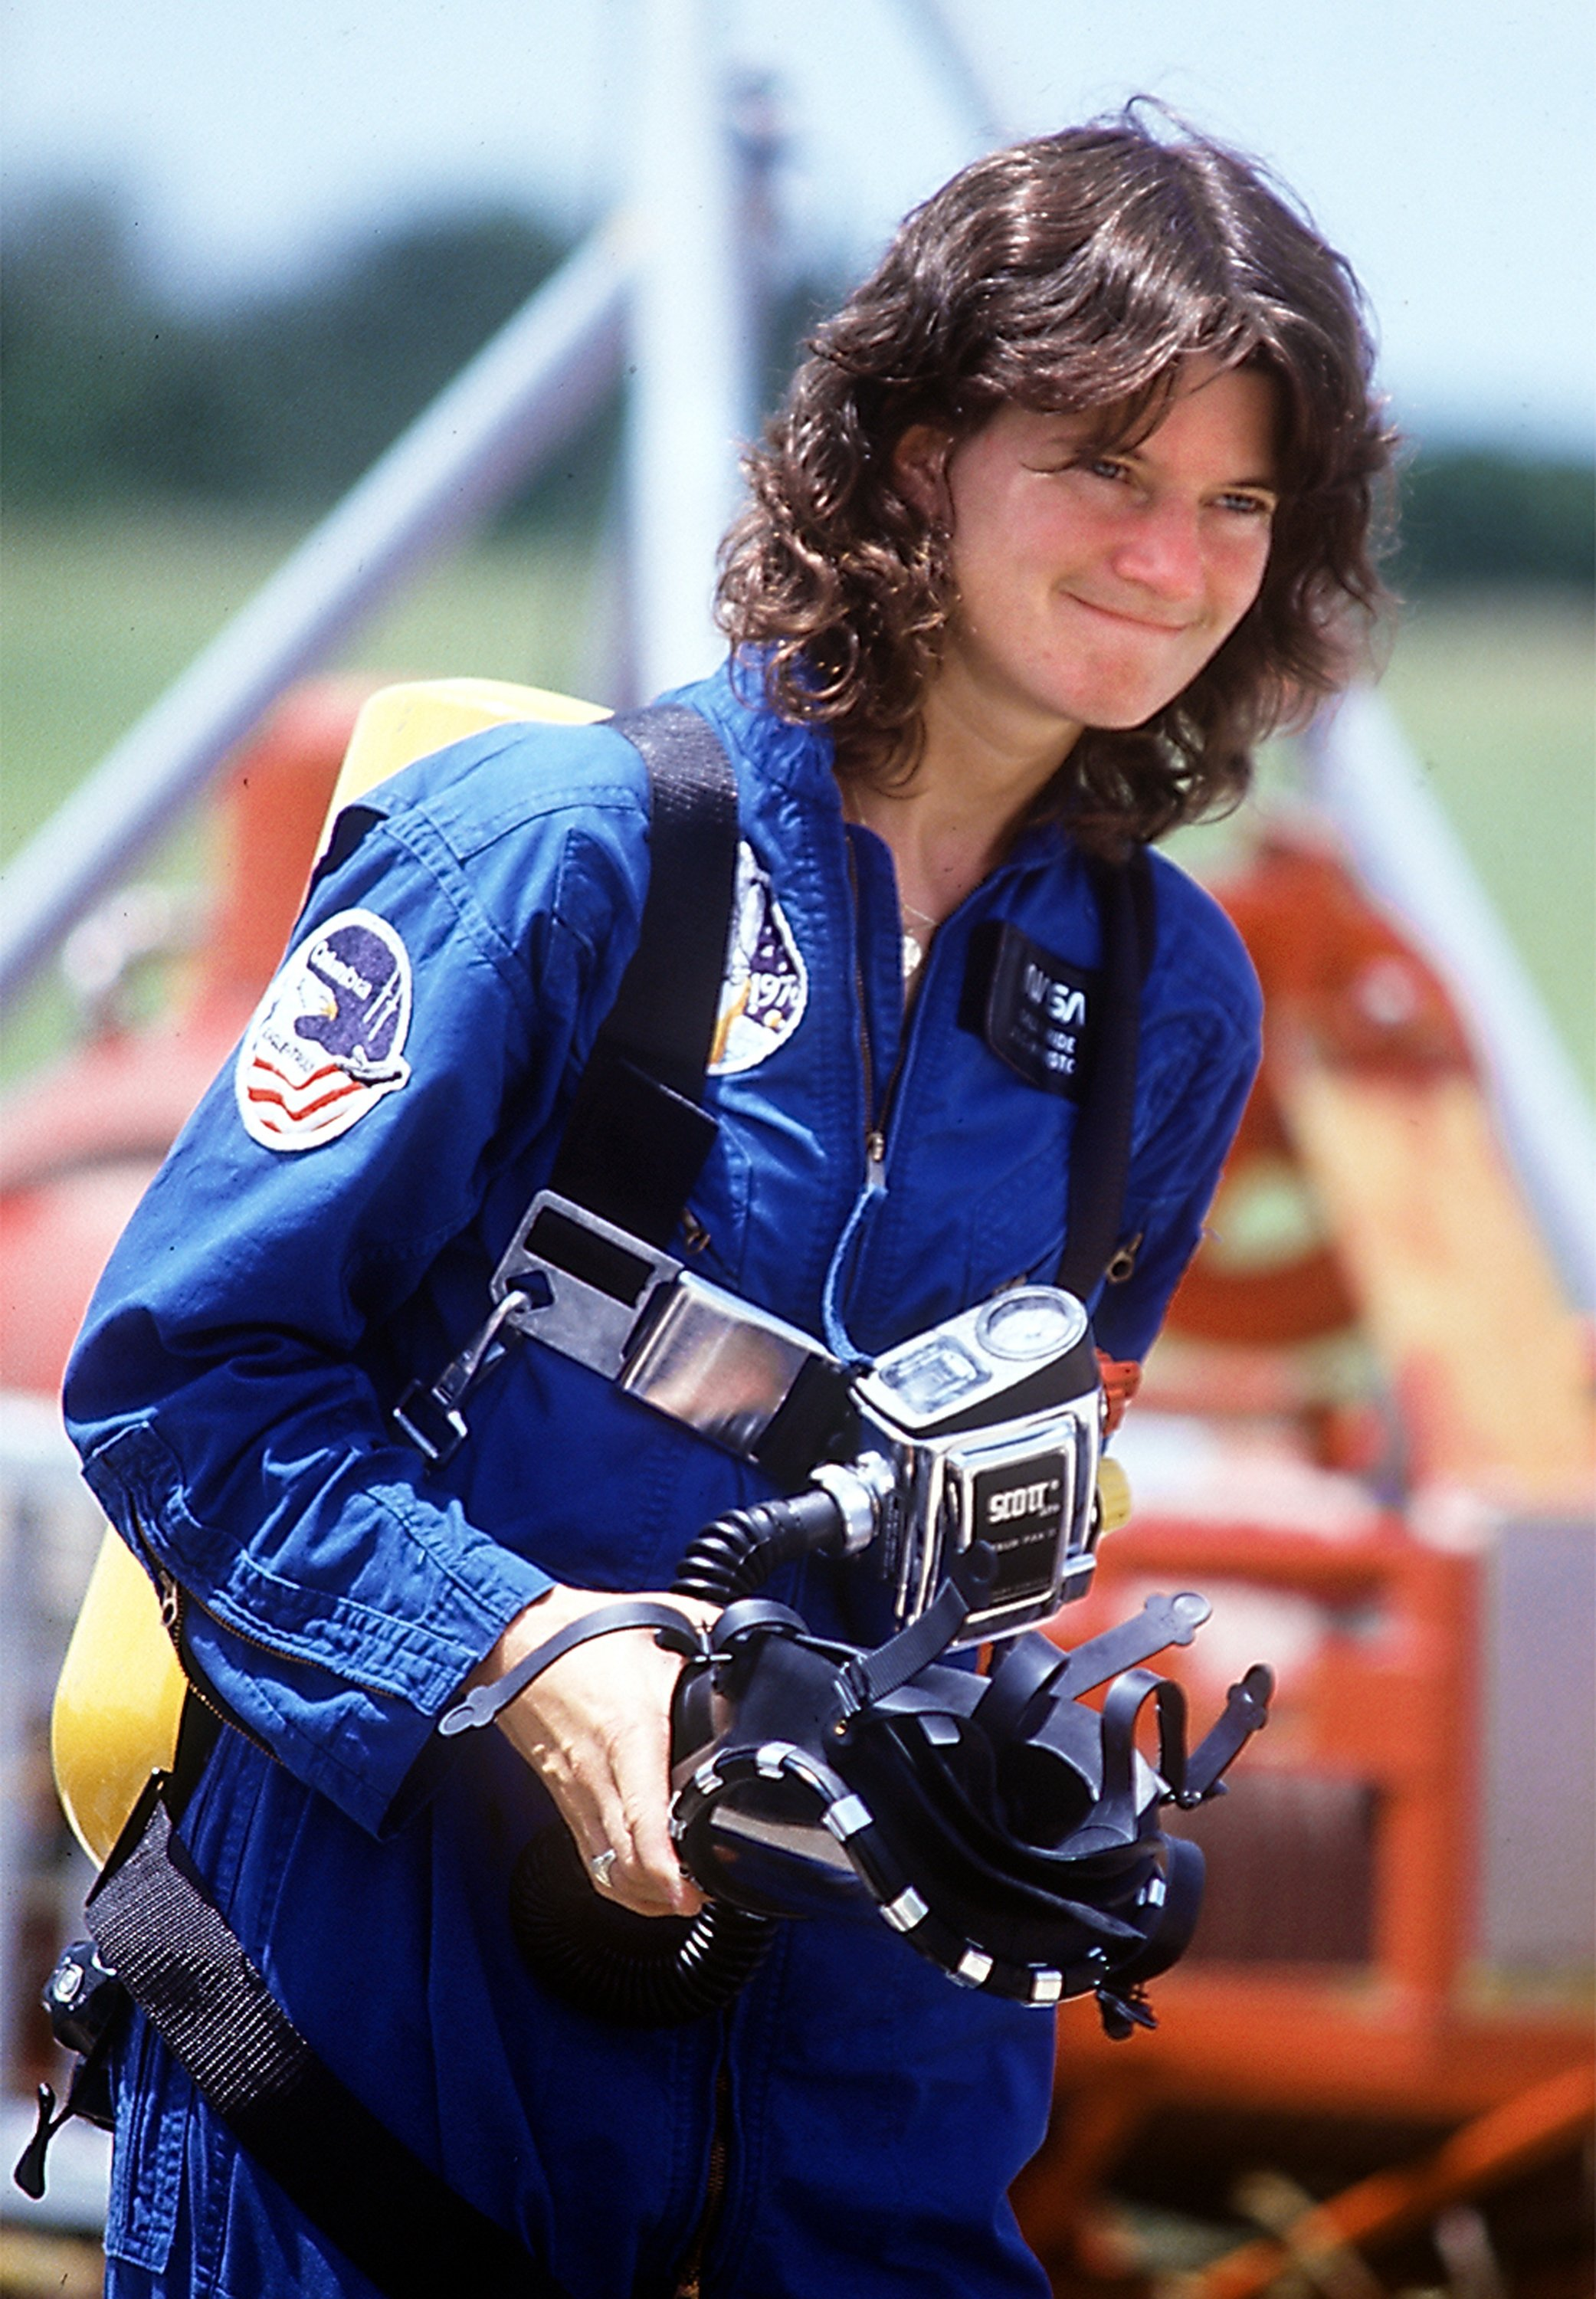 space shuttle challenger sally ride - photo #25